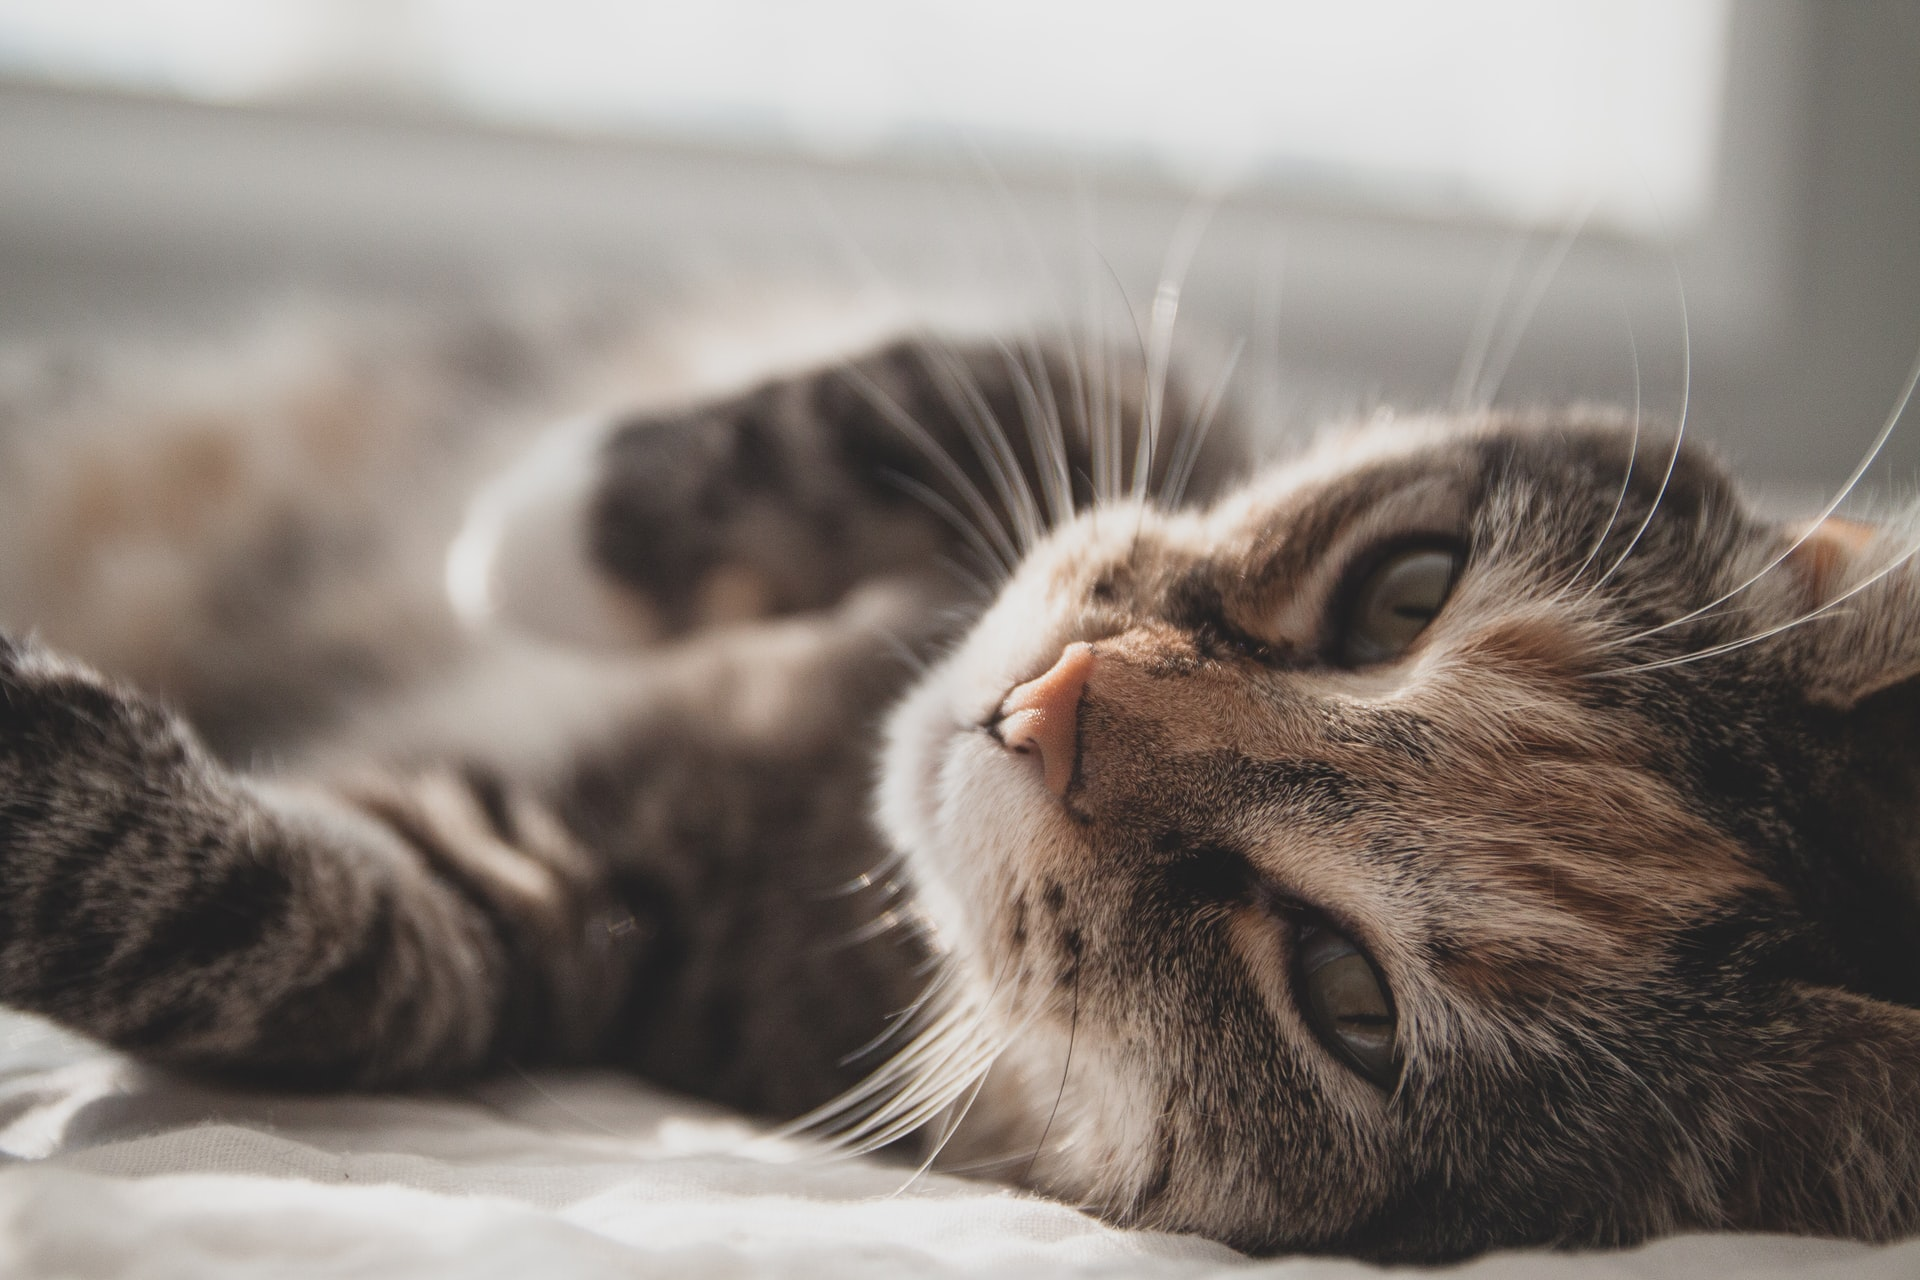 Cat laying on a bed with its belly and paws facing up while staring into the camera.